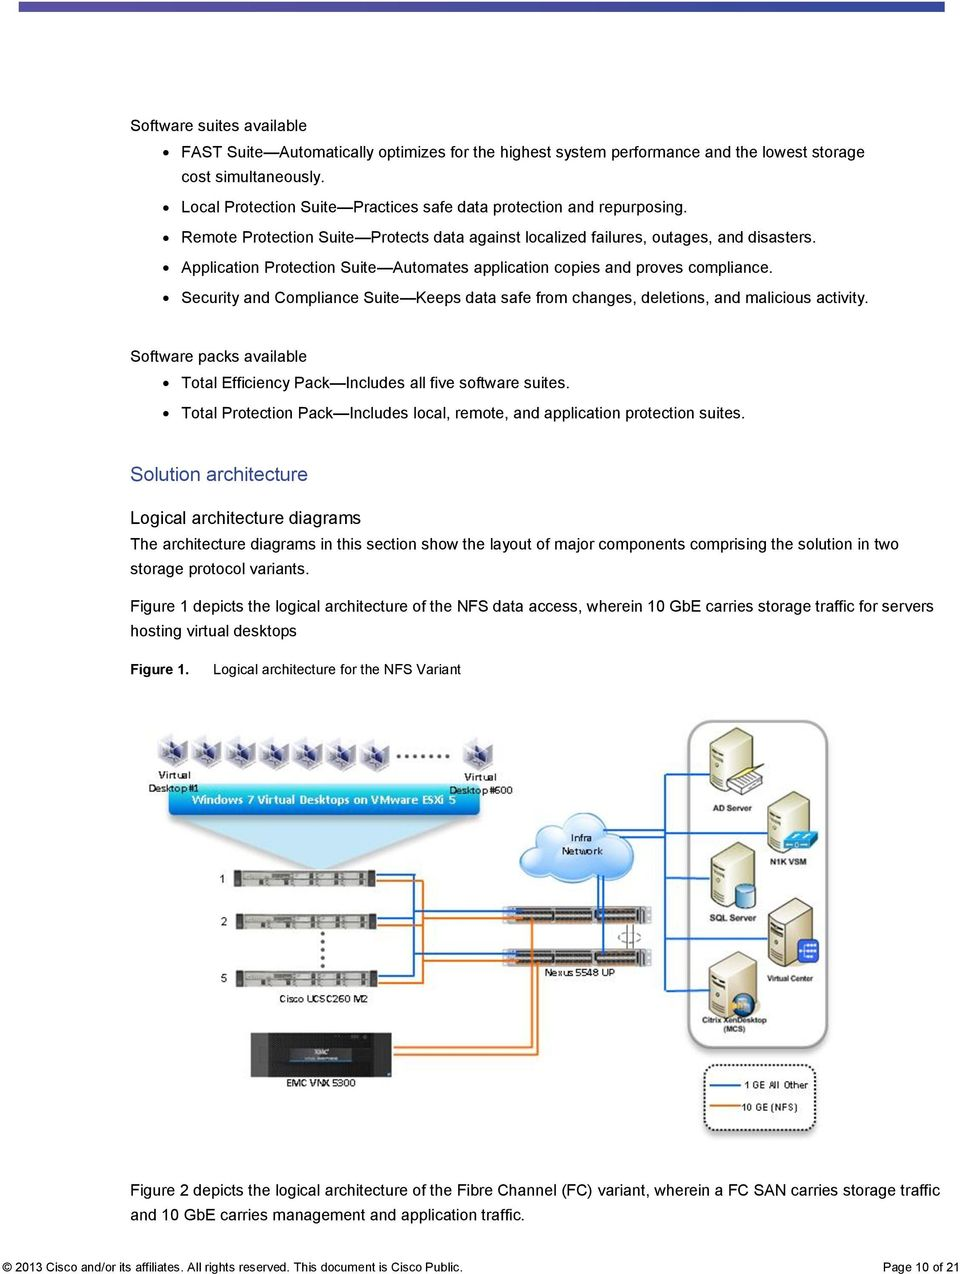 Cisco Solution For Emc Vspex End User Computing Pdf Network Interconnections Wiring Diagrams Application Protection Suite Automates Copies And Proves Compliance Security Keeps Data